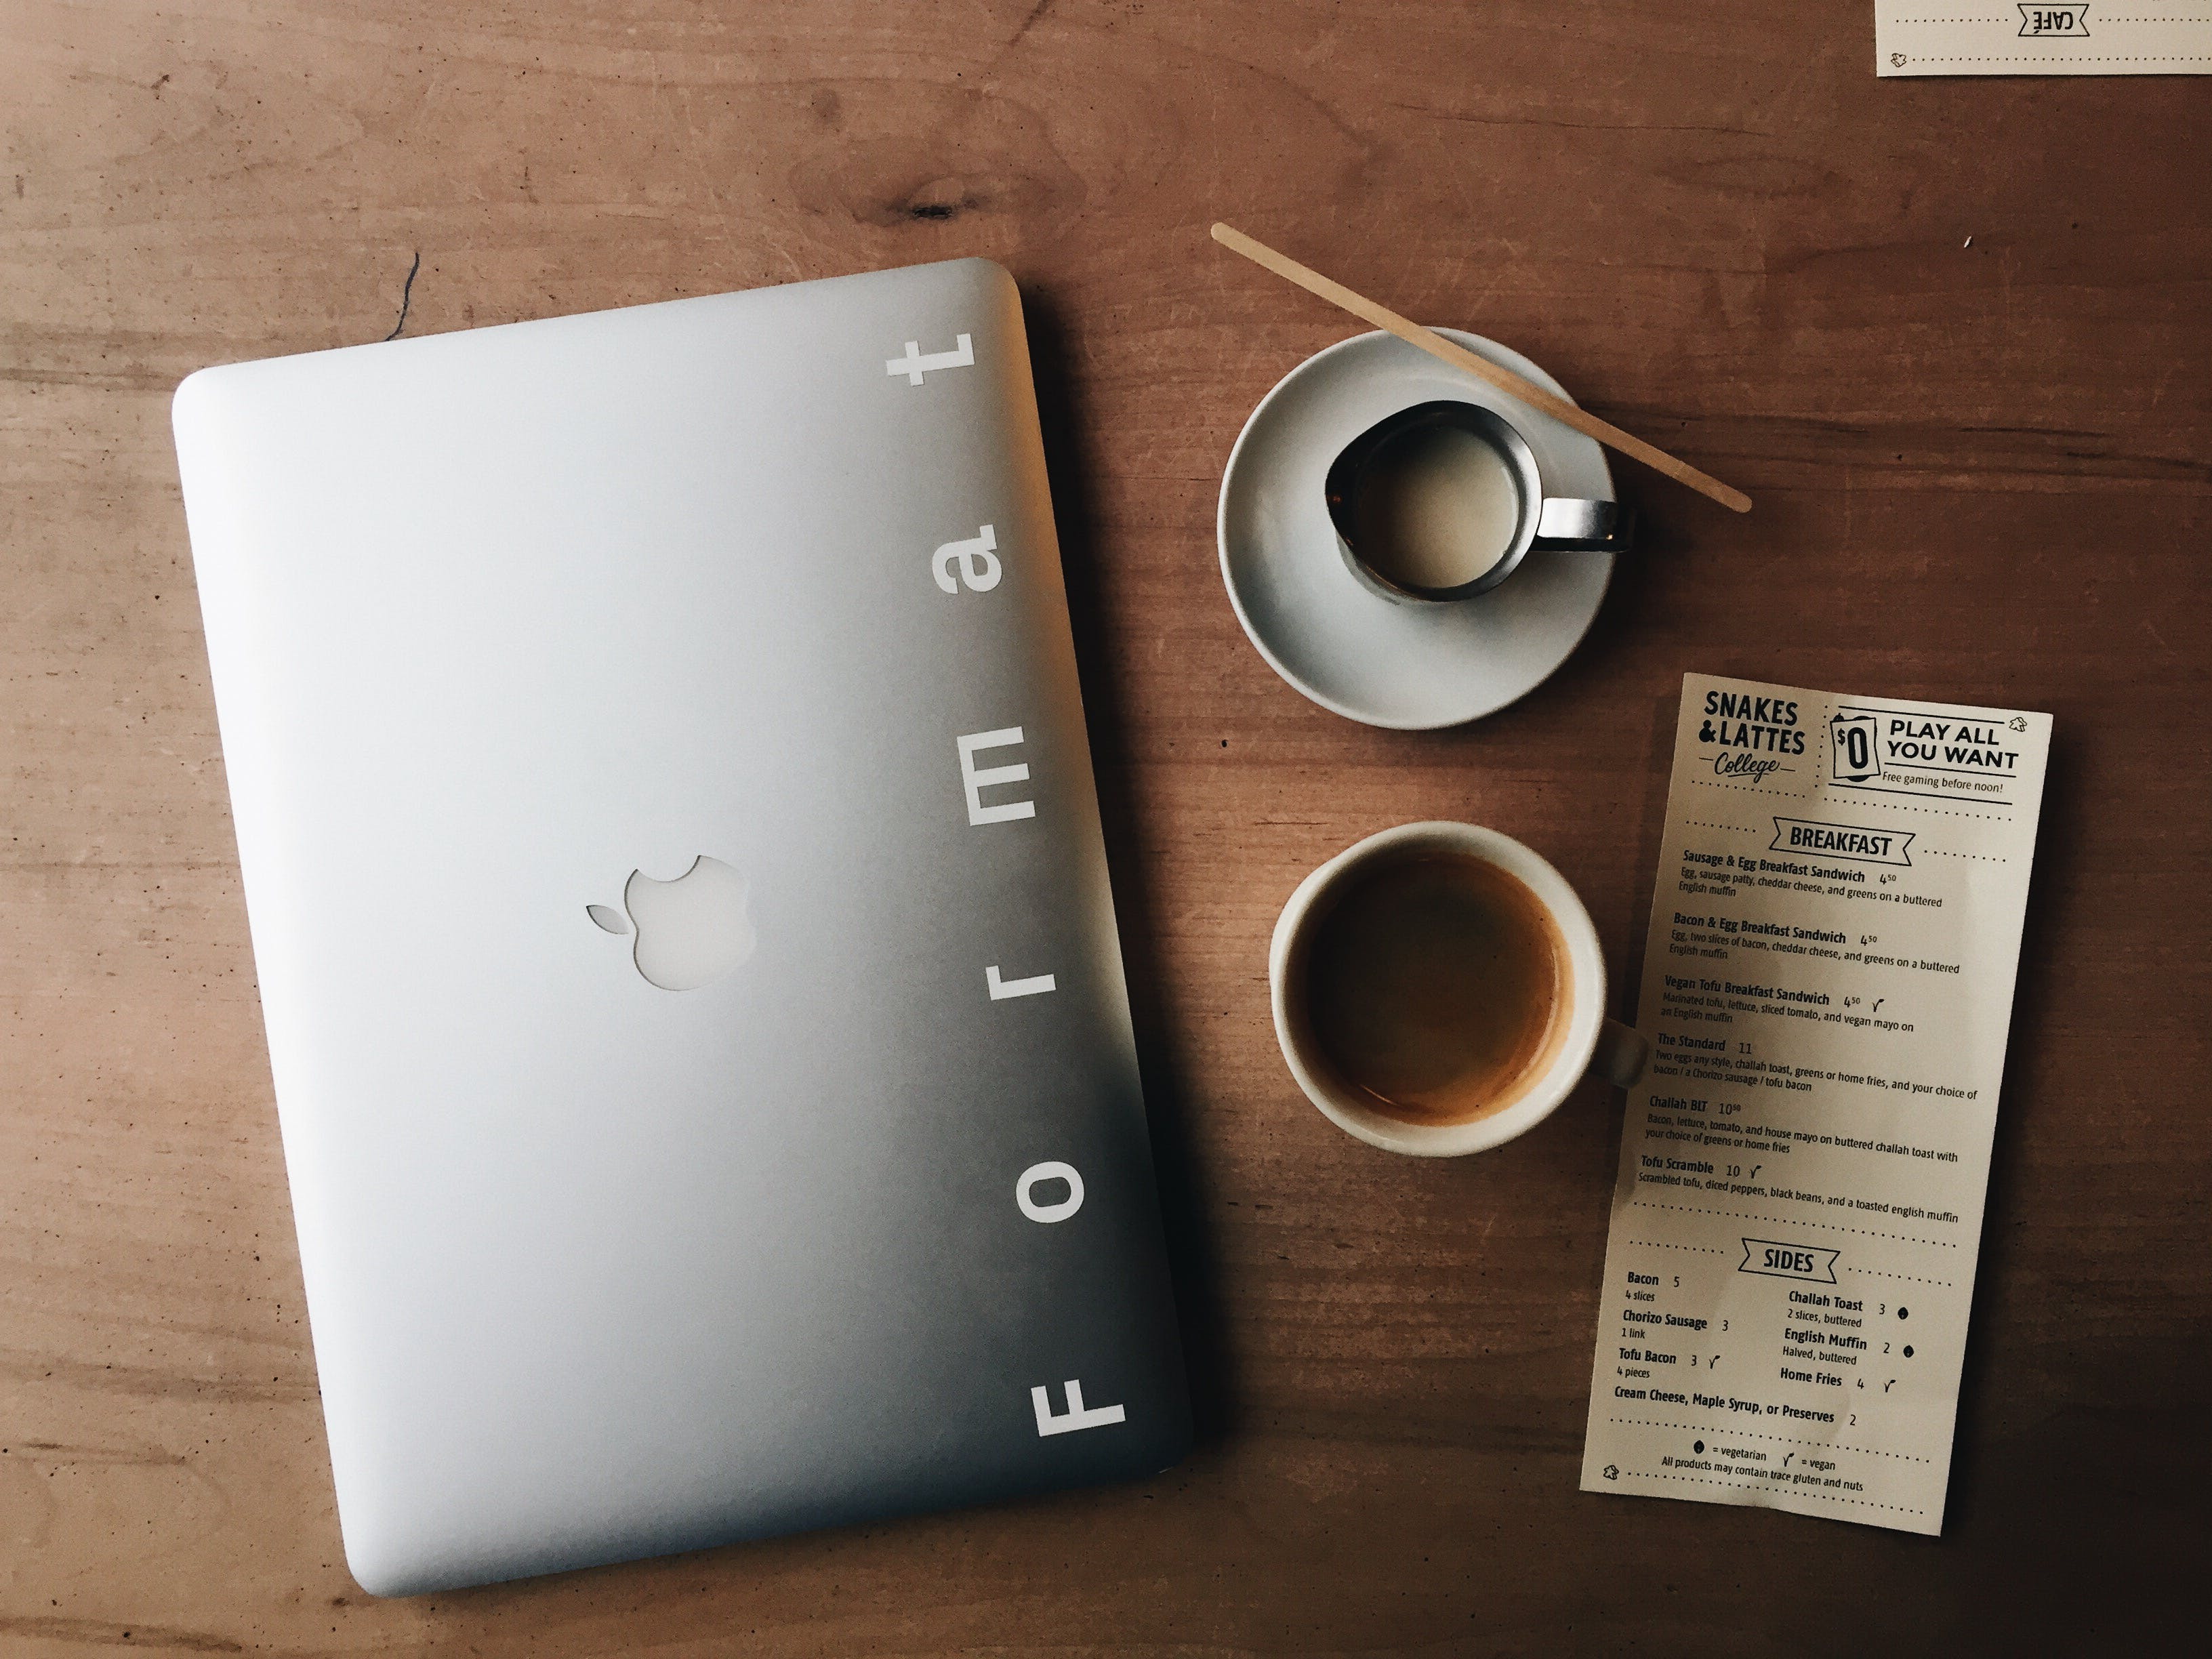 Photo of Macbook Near Cup and Saucer